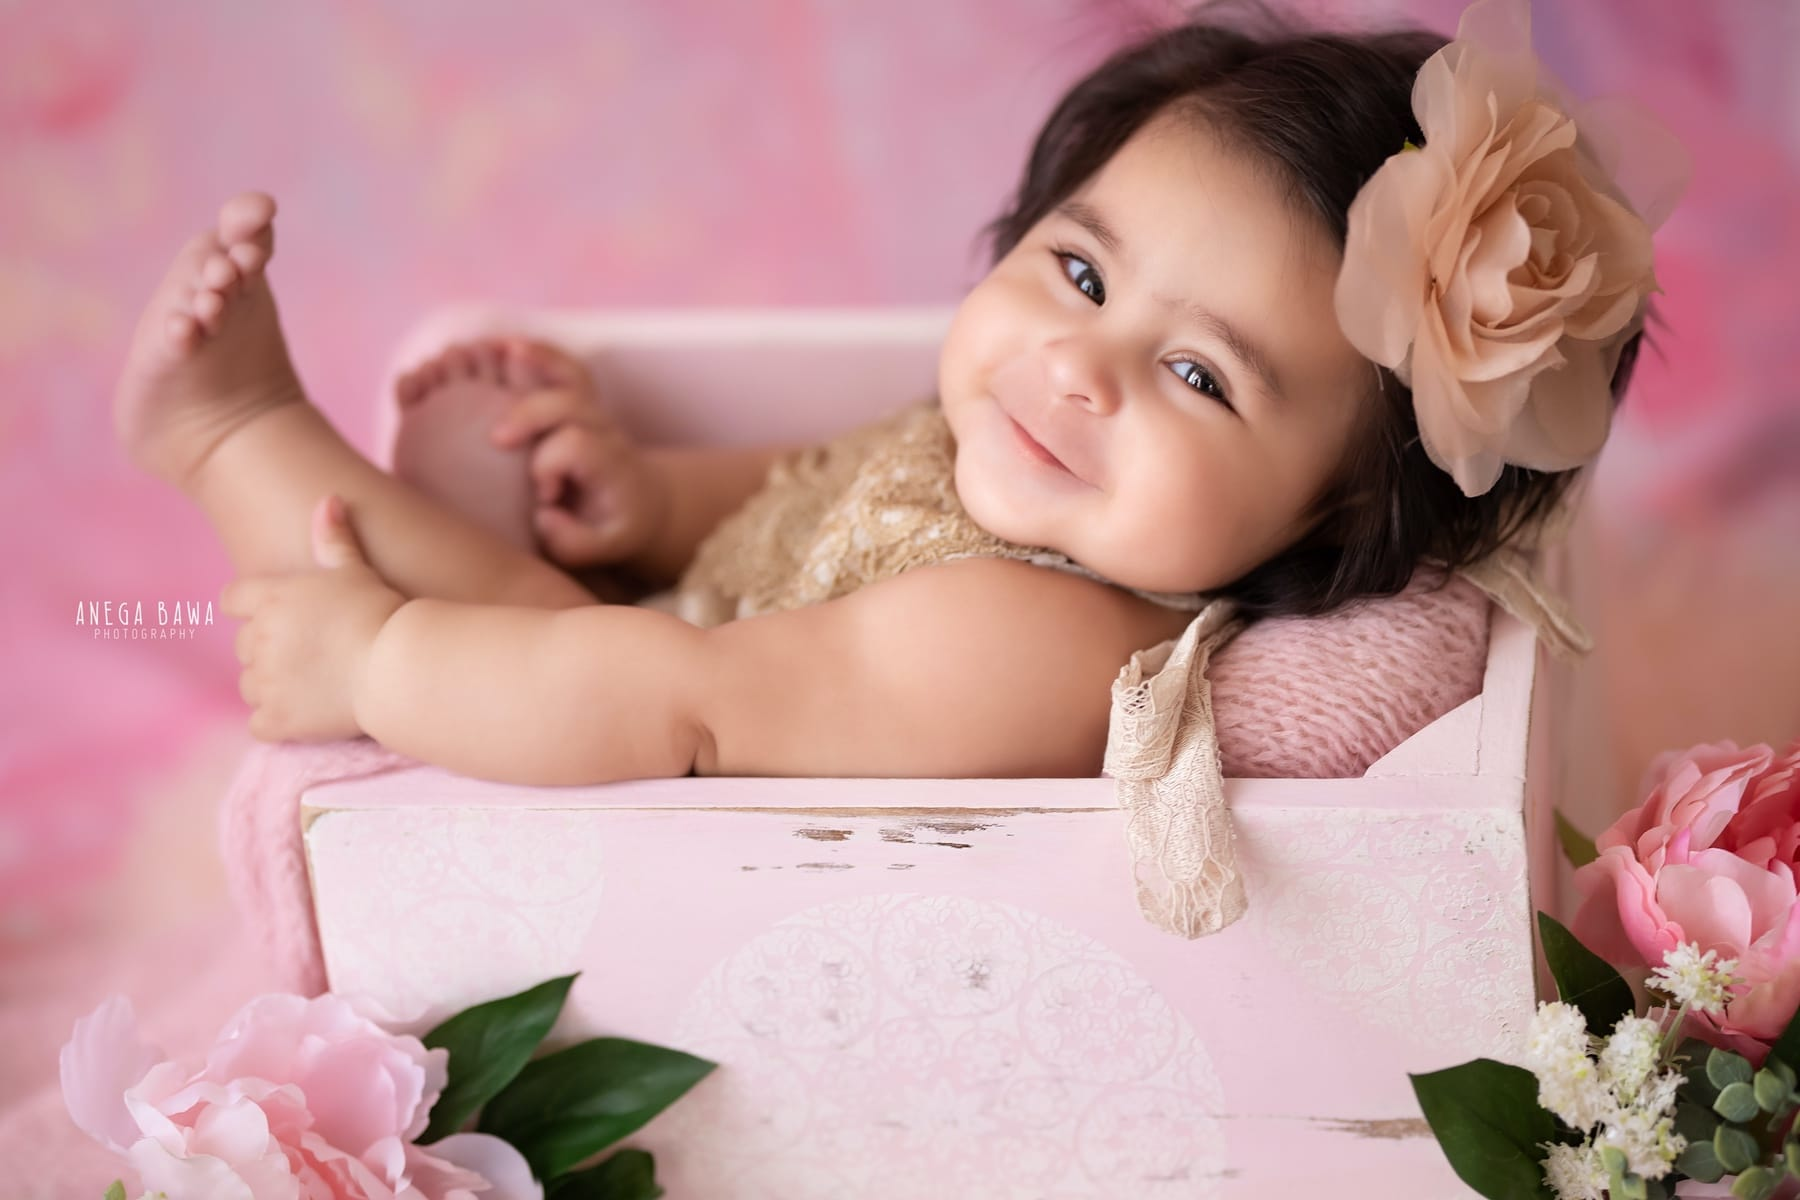 pink floral baby photography delhi 5 months baby girl photoshoot gurgaon anega bawa